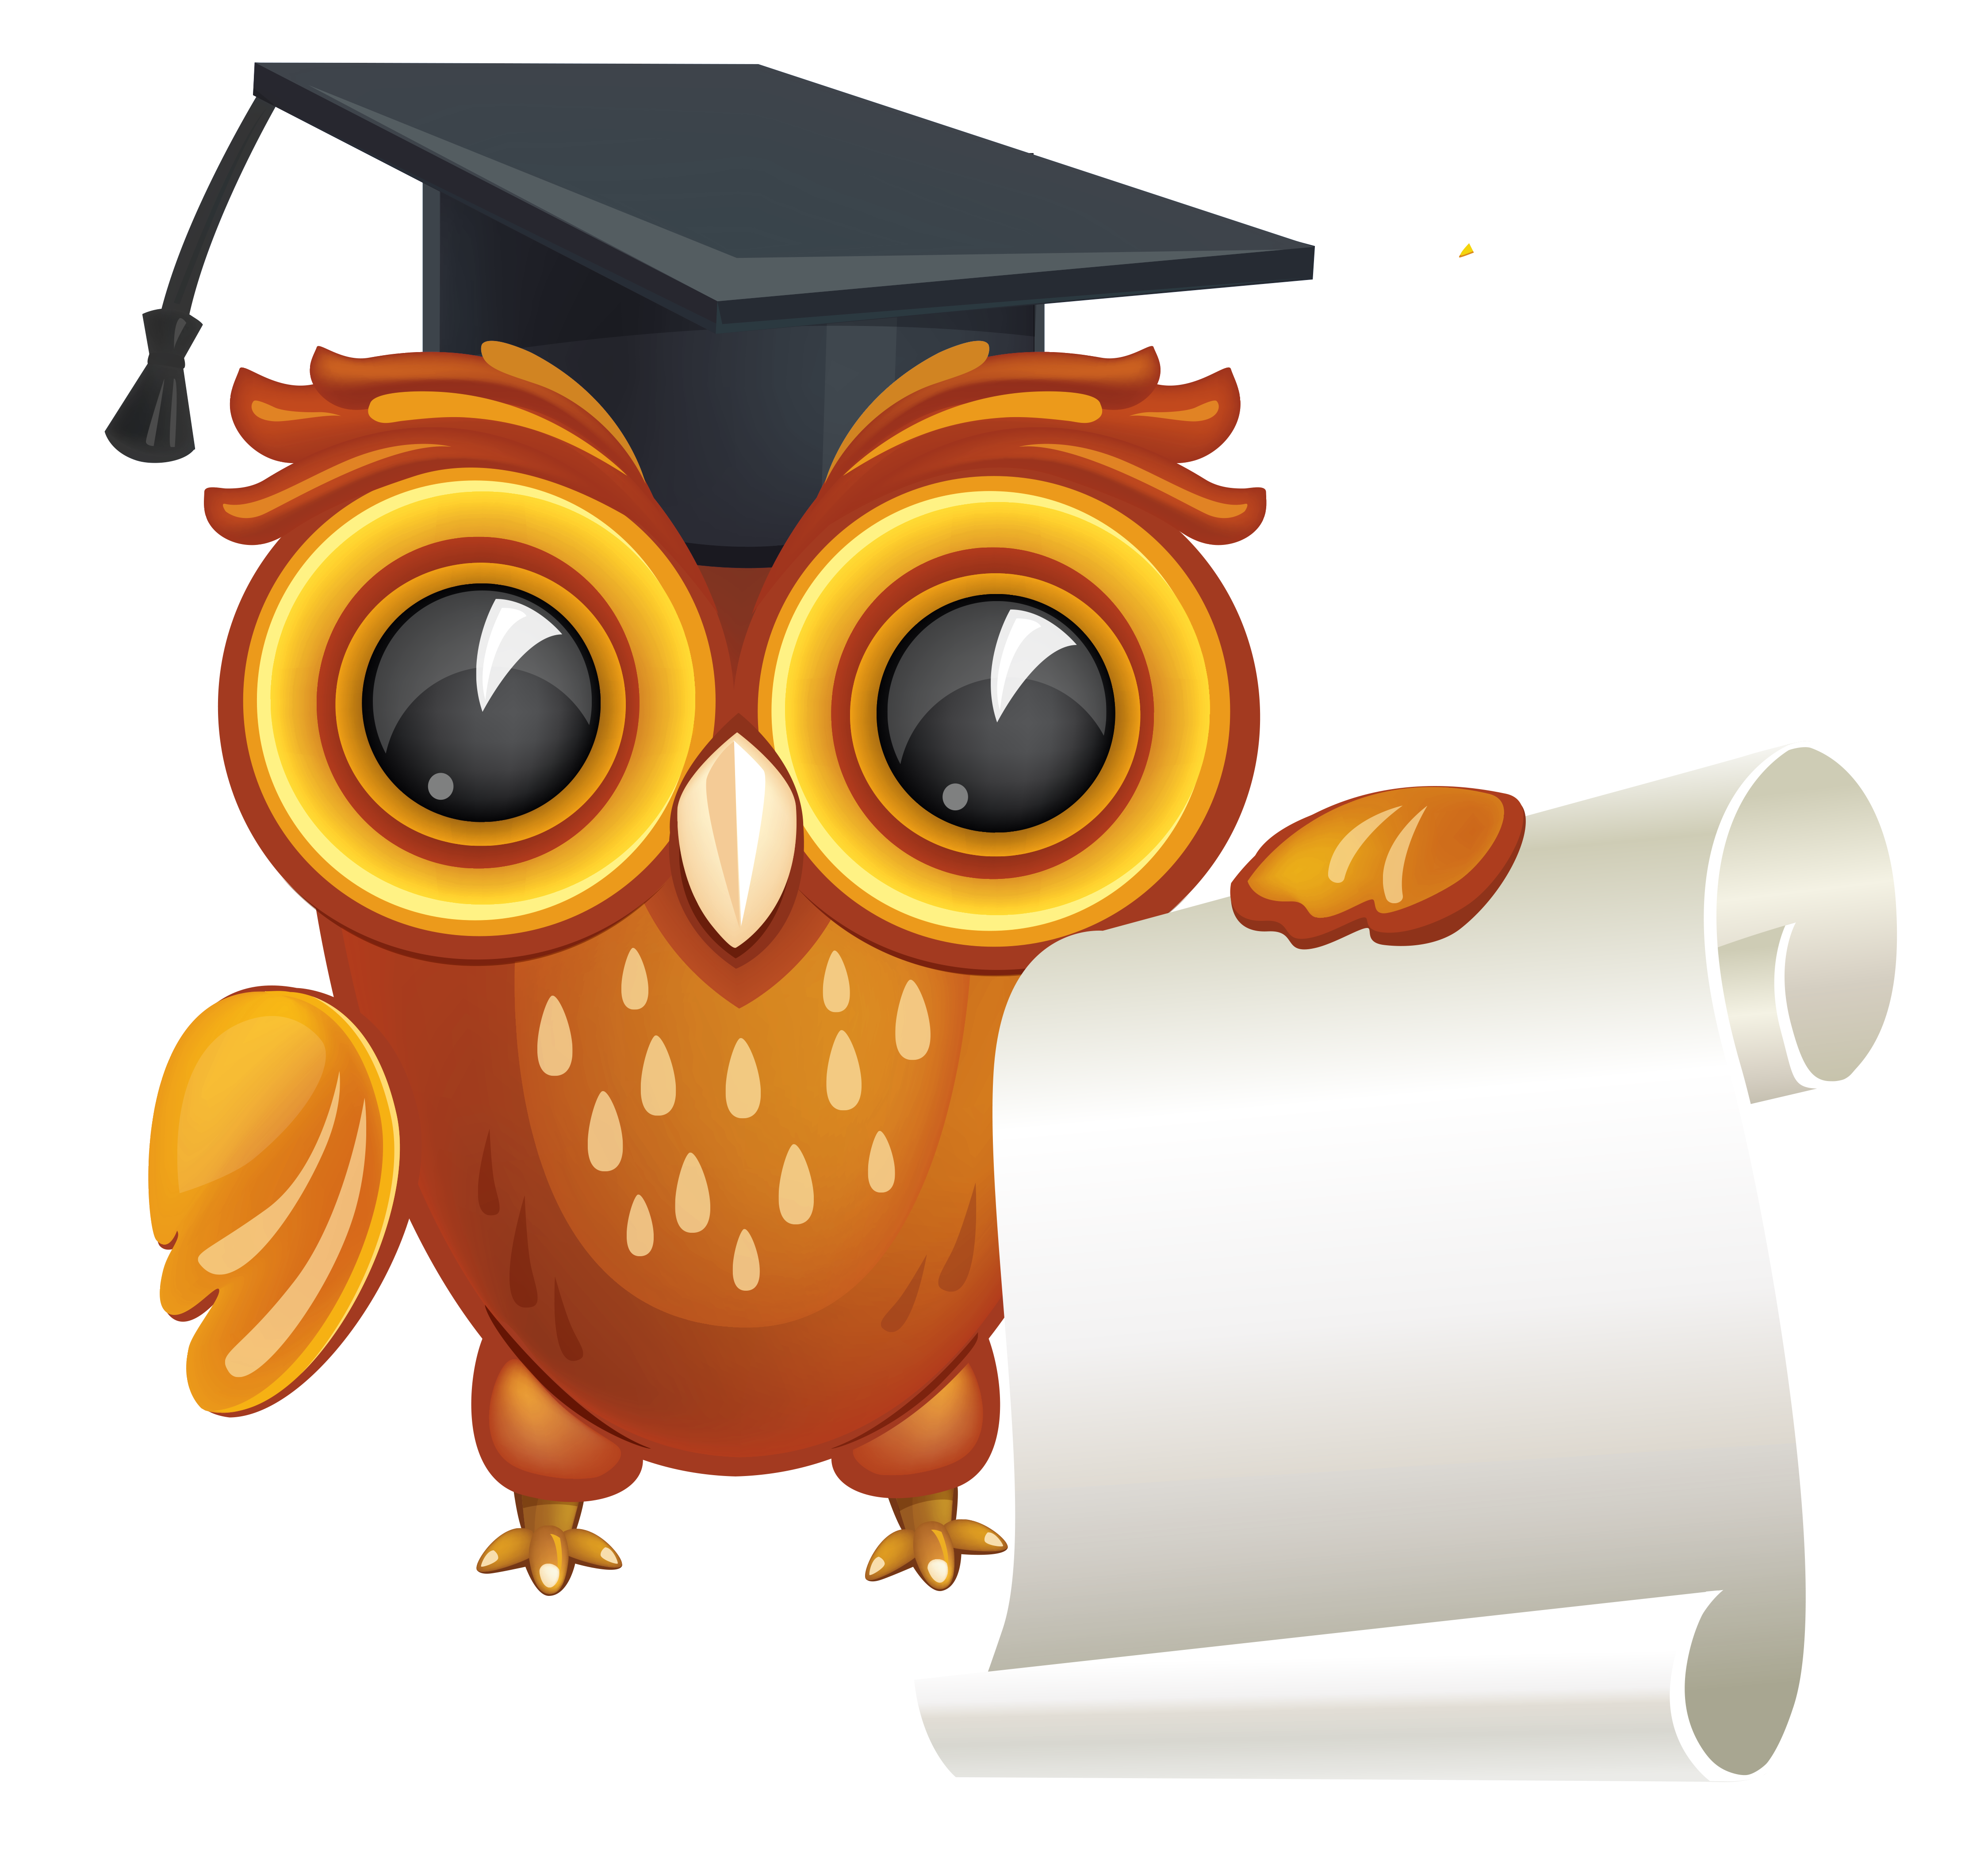 graphic transparent download With diploma png image. Graduation clipart owl